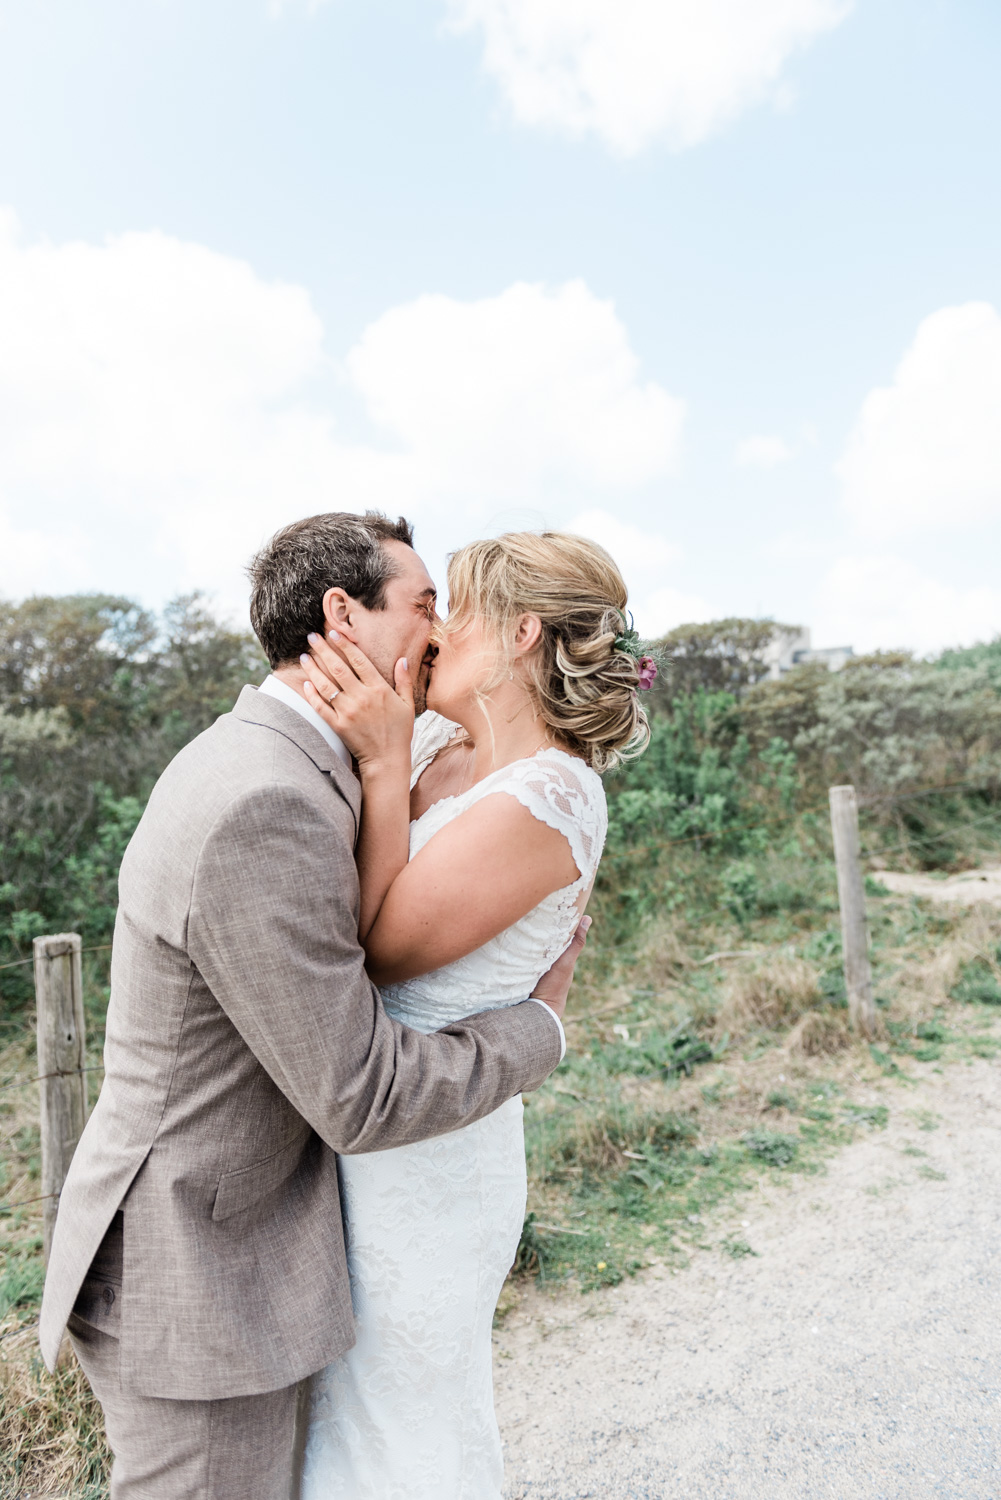 A first look for a bride and groom in Scheveningen